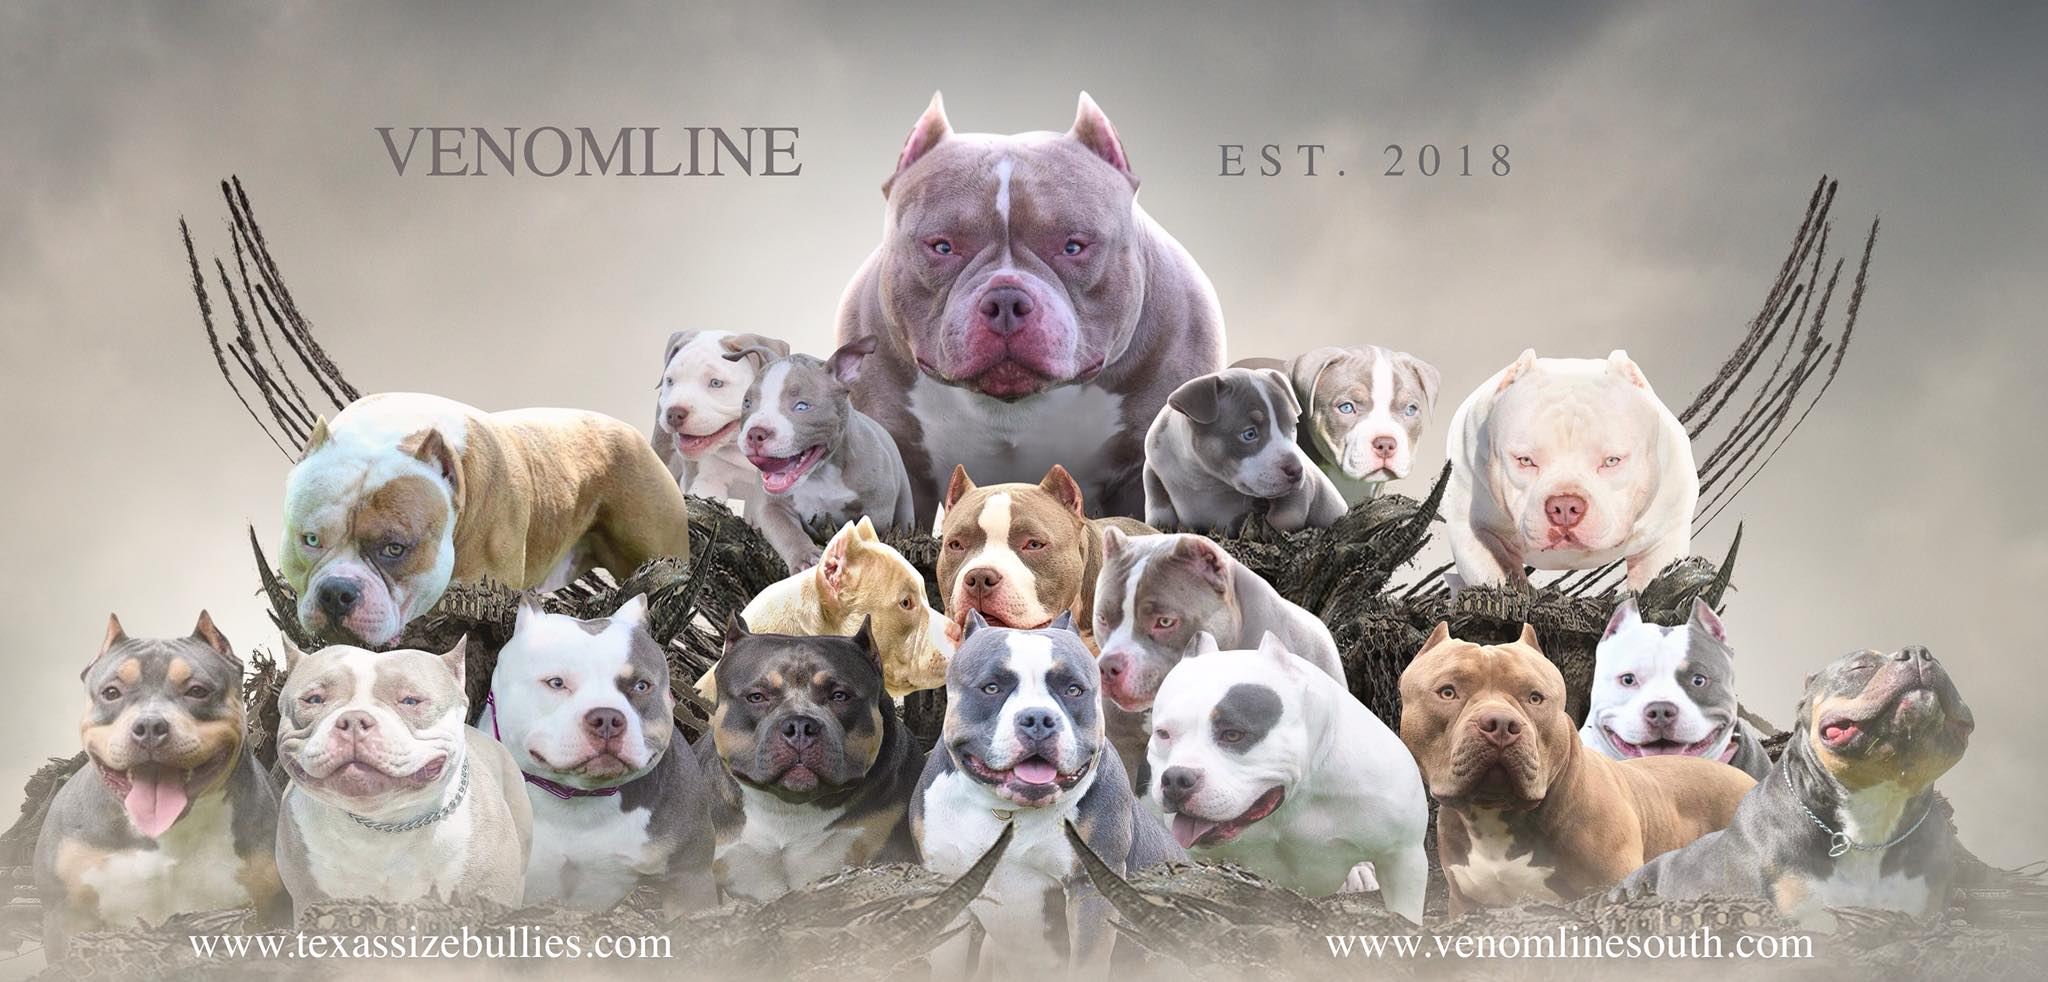 CHOOSING A STUD: SHOW DOGS & STUD DOGS IN THE AMERICAN BULLY BREED